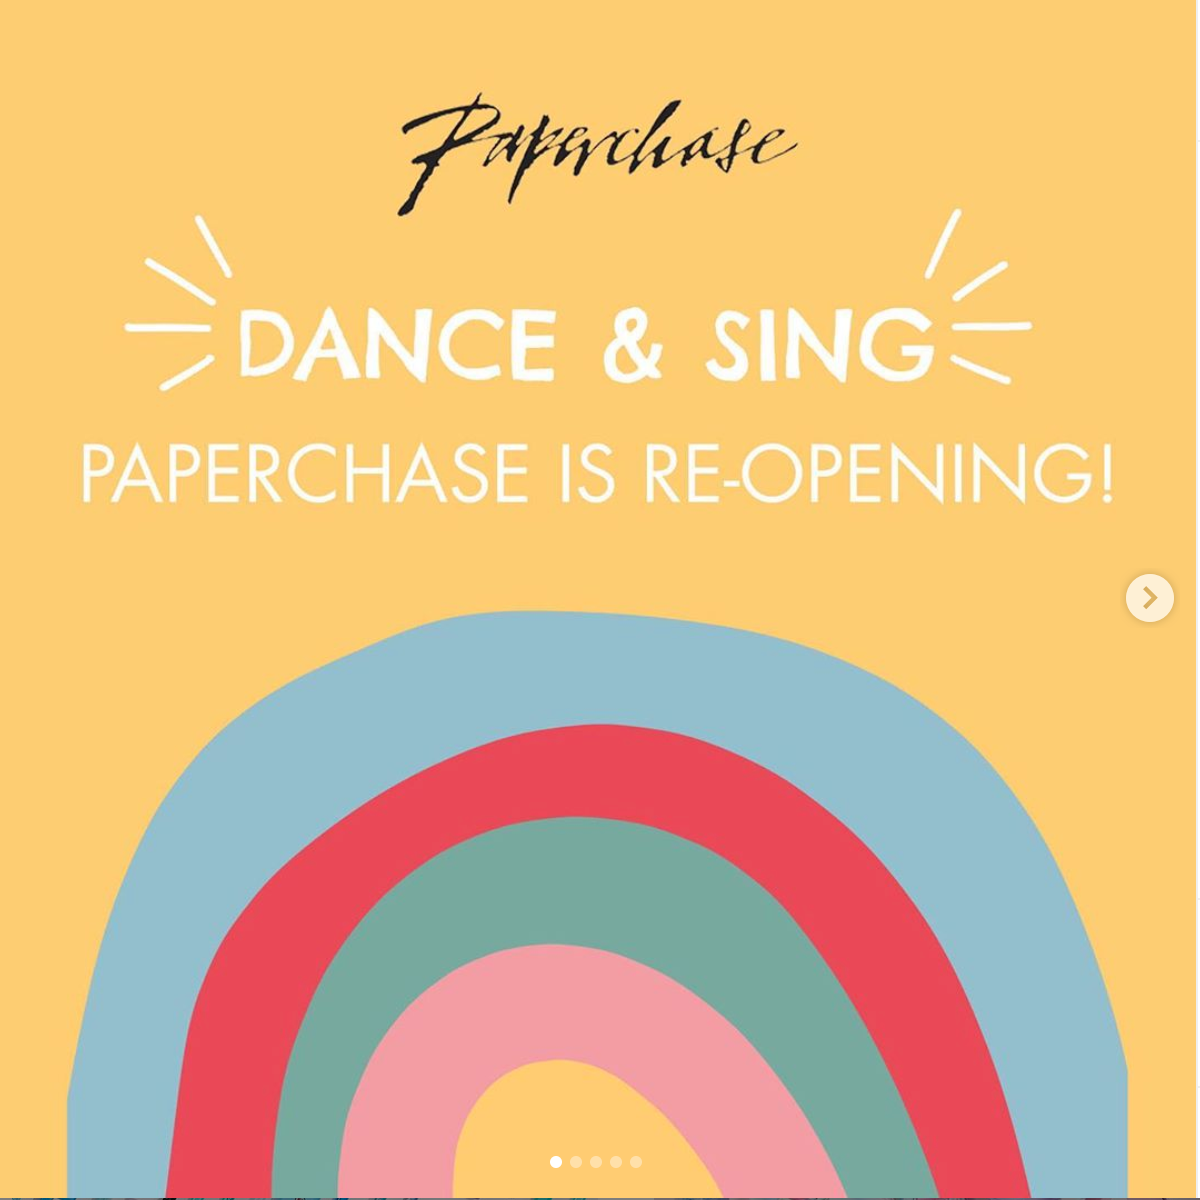 Above: Paperchase has adopted a three phased re-opening programme for its stores.